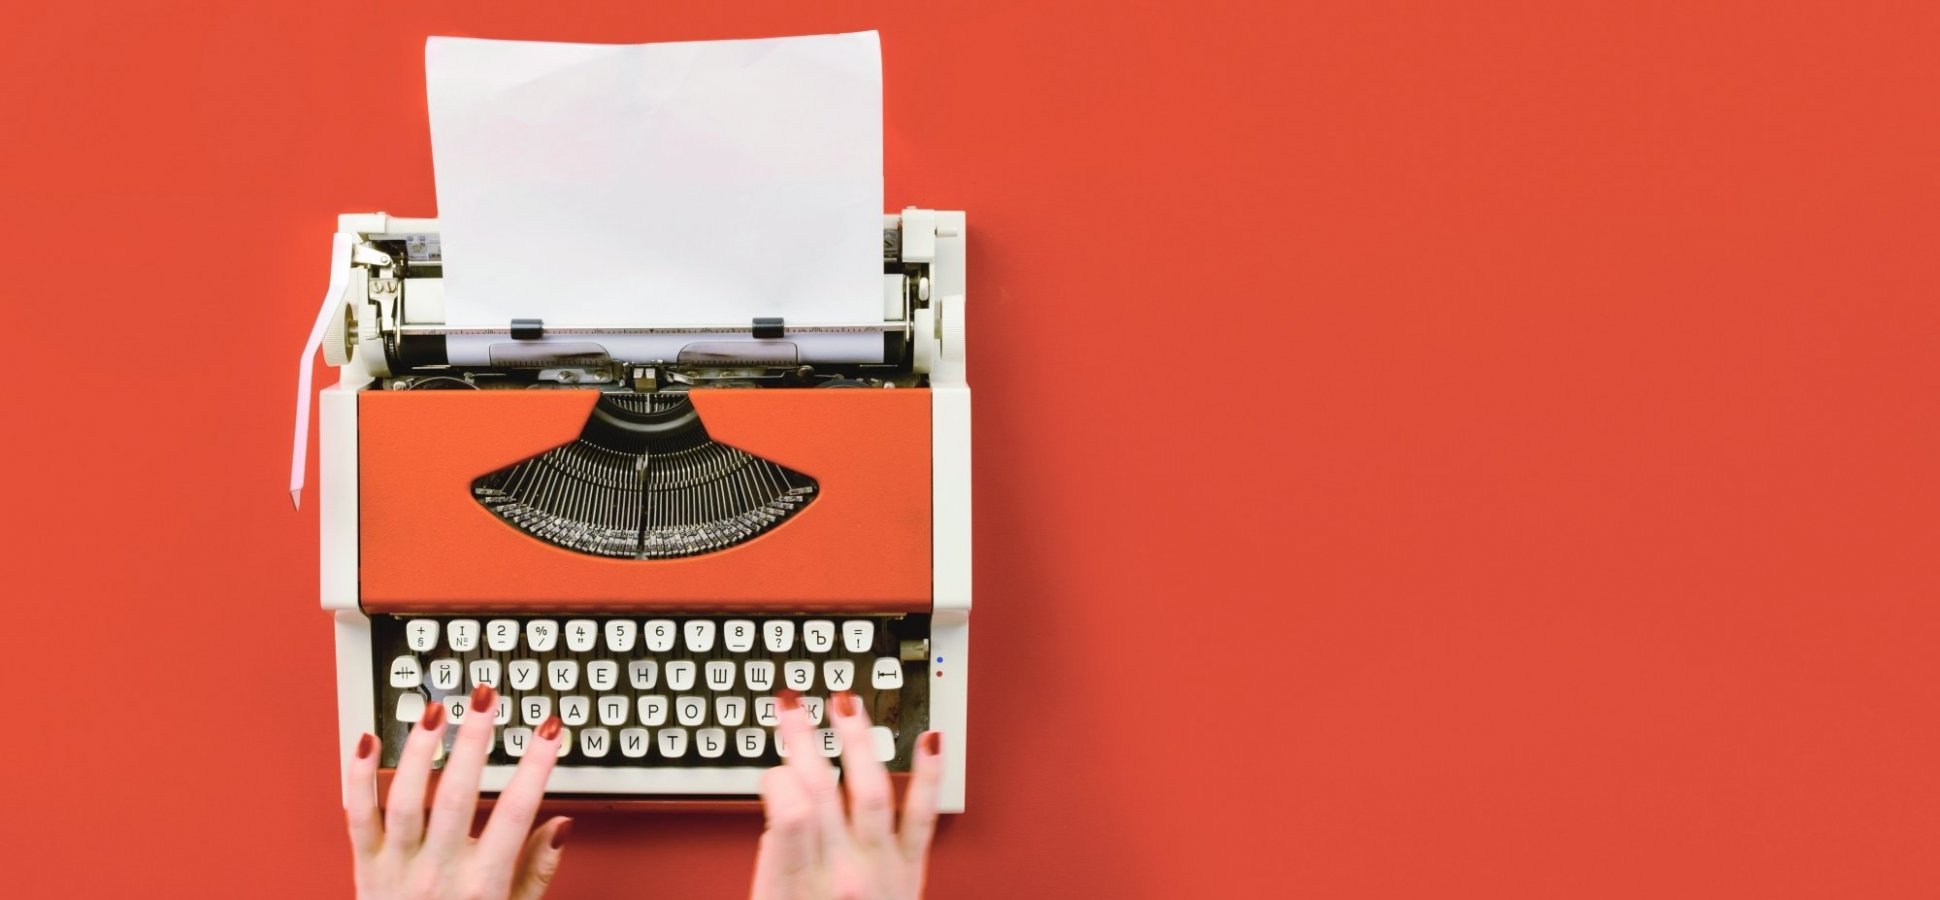 Want to Become an Expert Copywriter? Start With These 5 Books and Online Courses